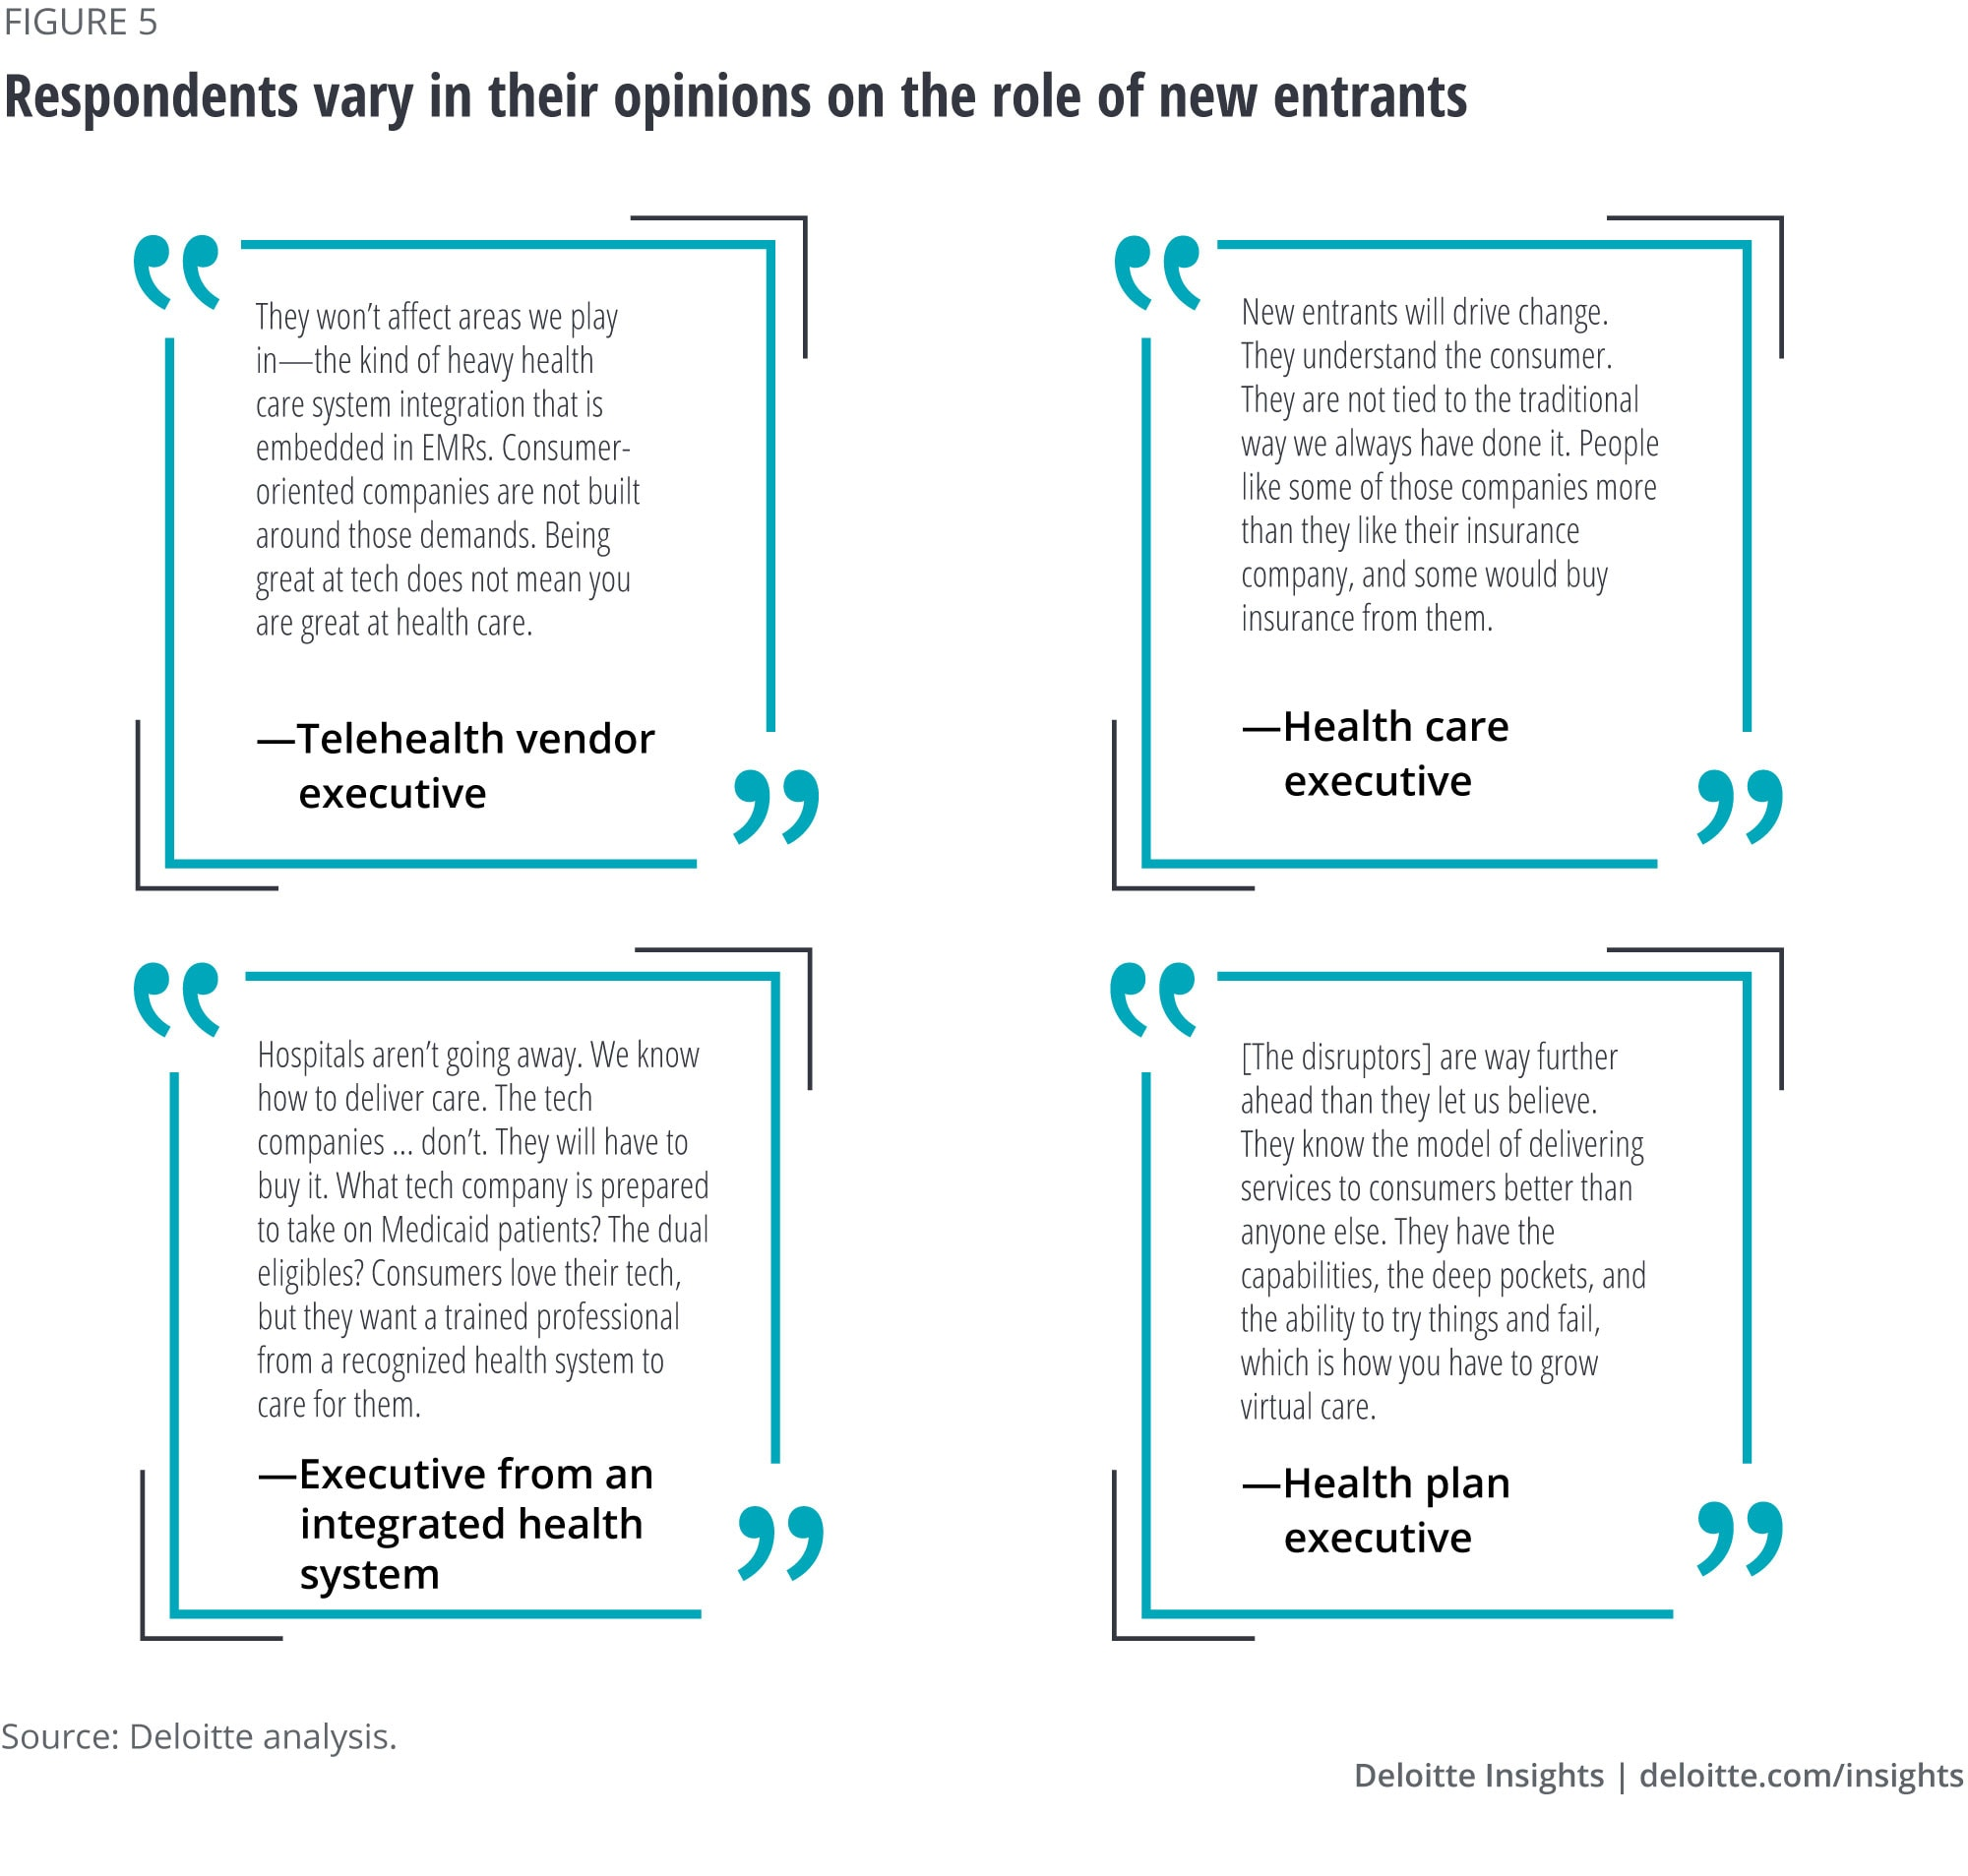 Opinions vary on the role of new entrants